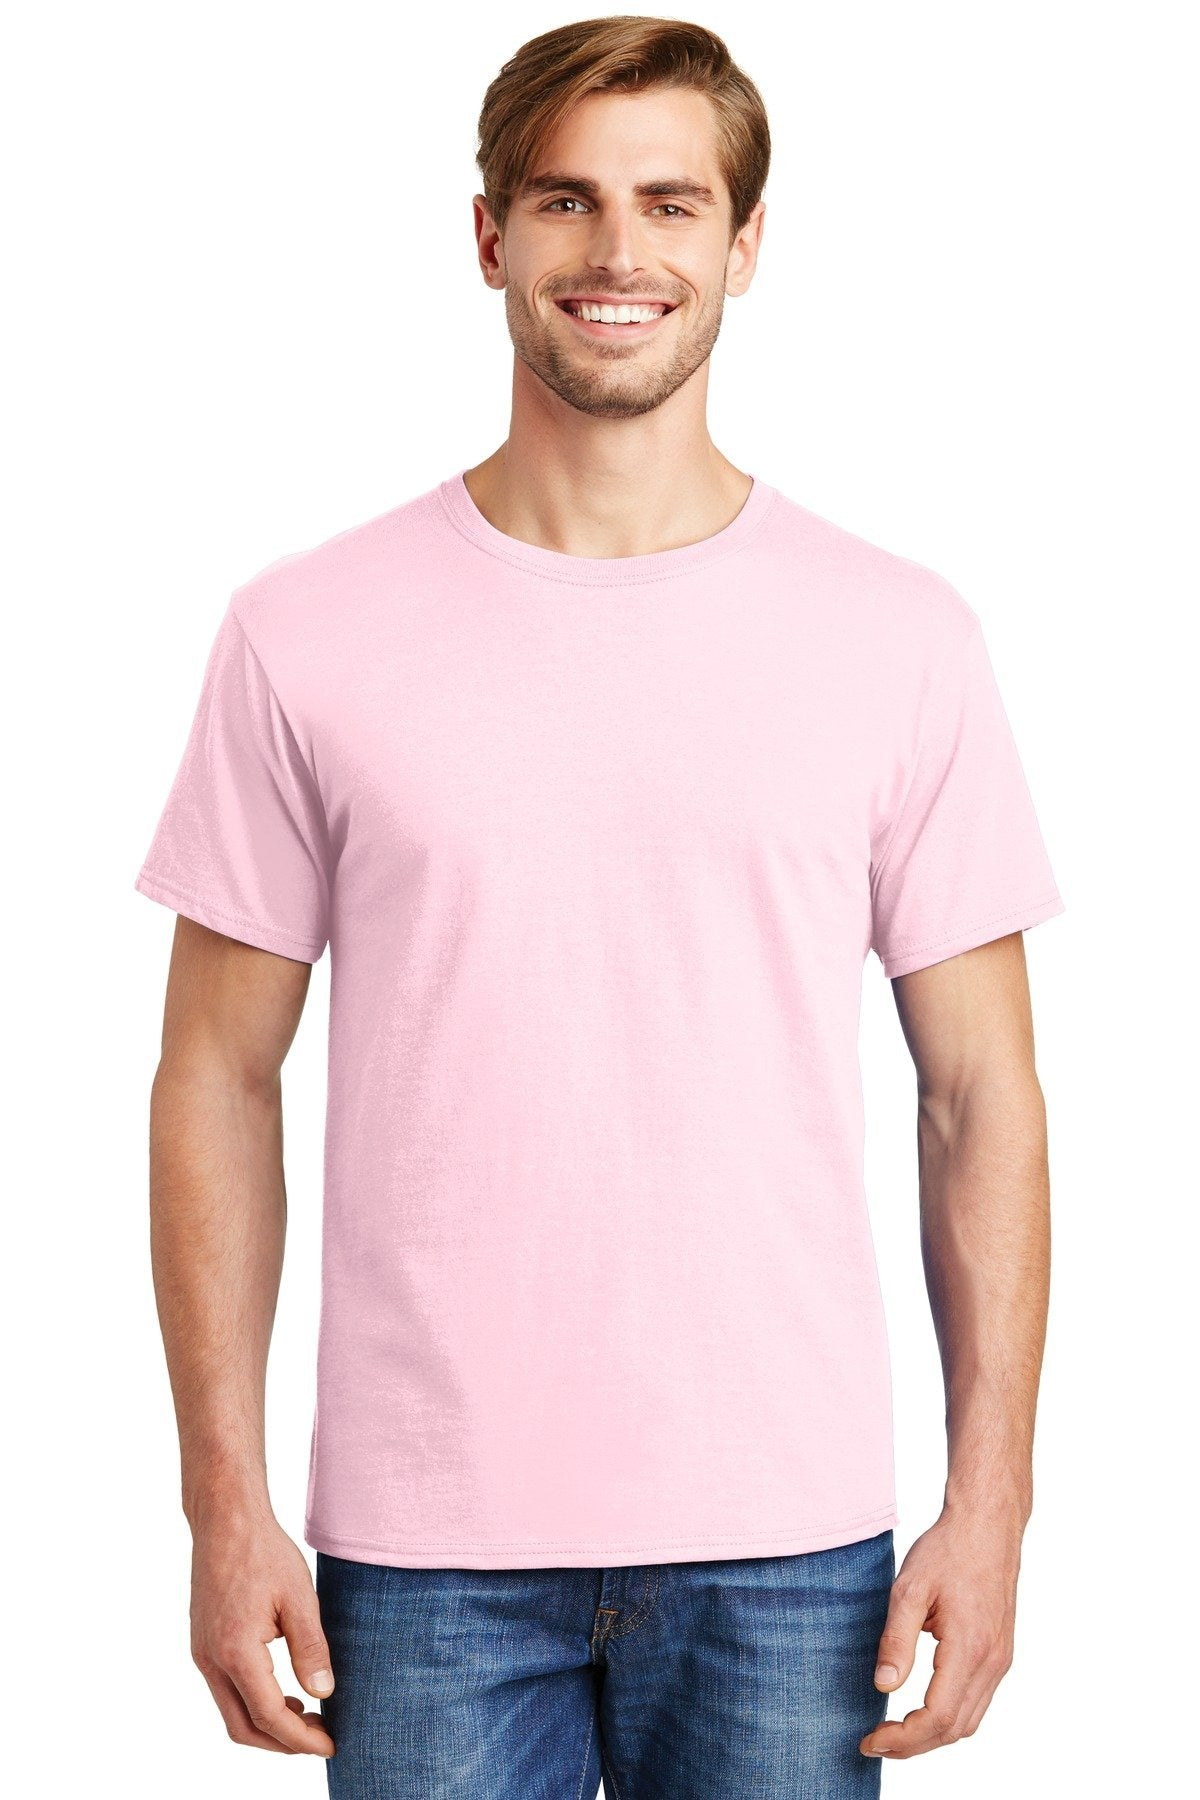 Pale Pink - Hanes 5280